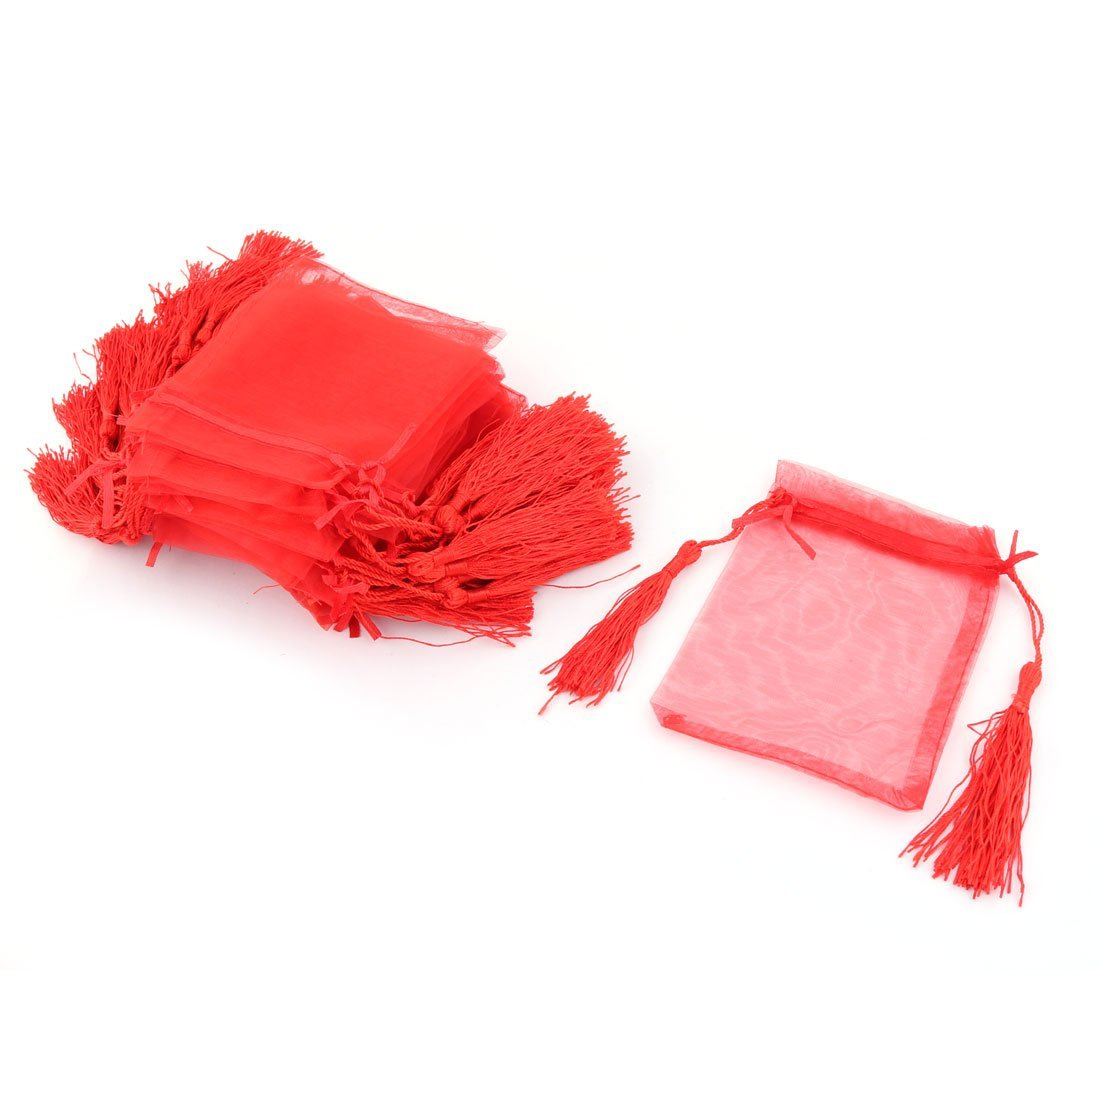 uxcell Organza Tassels Decor Candy Jewelry Pouch Wedding Gift Bag 10 x 13cm 25 Pcs Red